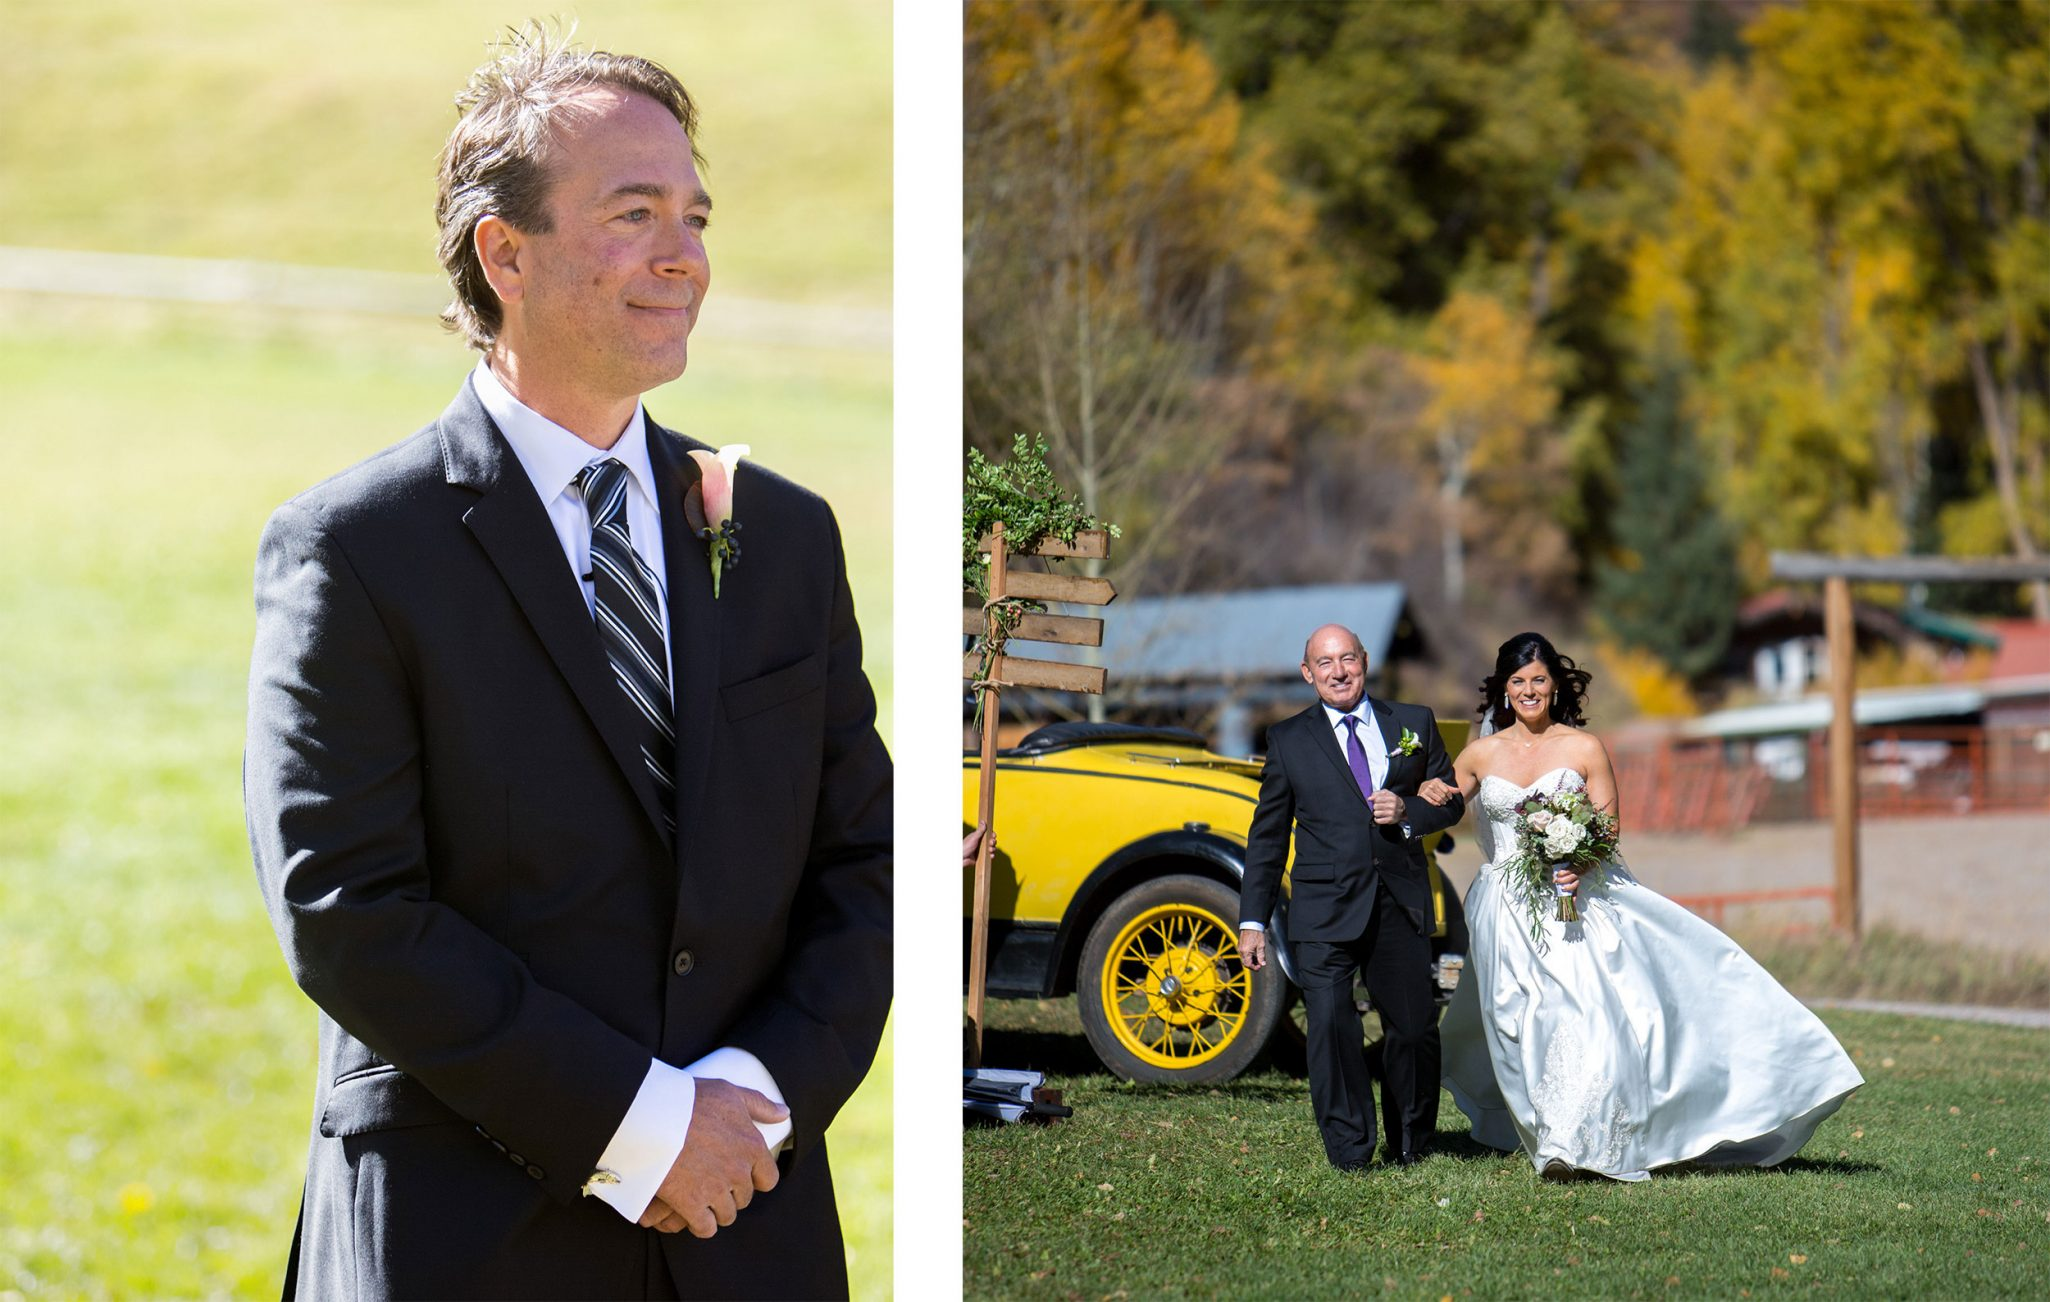 Walking down the aisle | A Fall Aspen Wedding at T Lazy 7 Ranch, Colorado